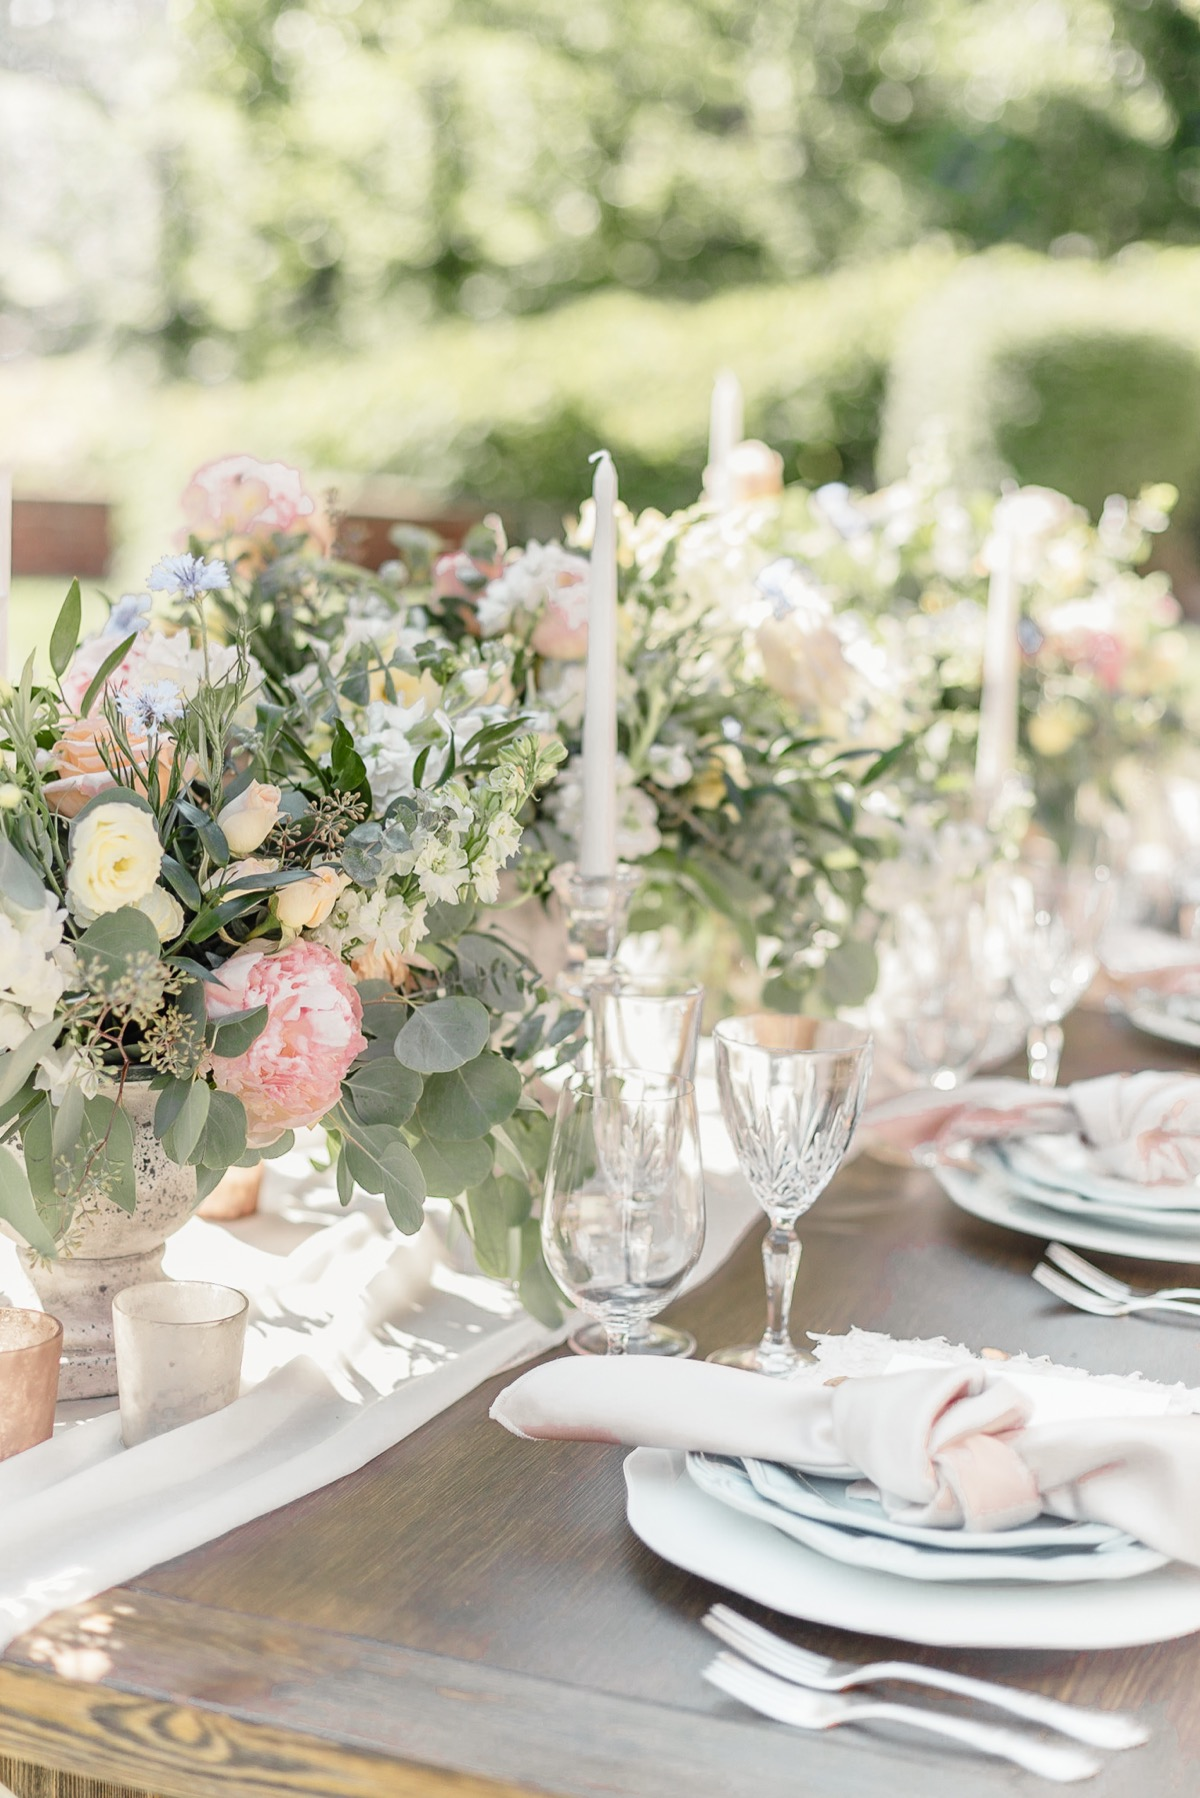 Breathtaking Summertime Cincinnati Peterloon Estate Editorial Catherine Milliron Photography